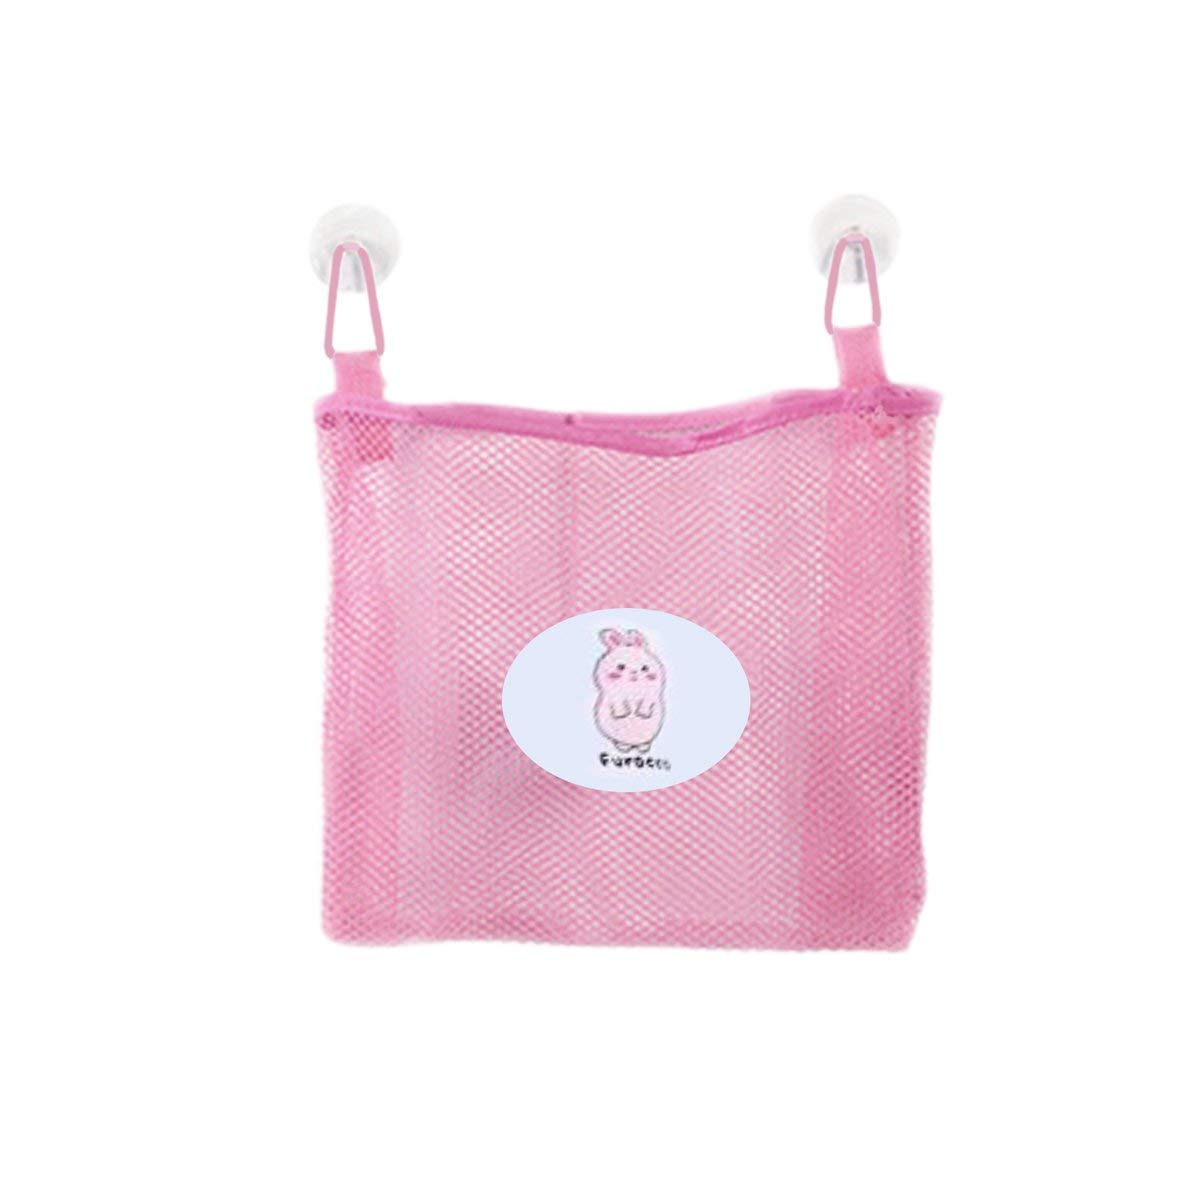 Tivolii Bath Tub Toy Hanging Mesh Storage Bag Organizer Portable Grid Oxford Fabric Nylon Double Suction Cup Hanging Travel Toiletry Kit Wash Bag Hanging Hook Storage Bag